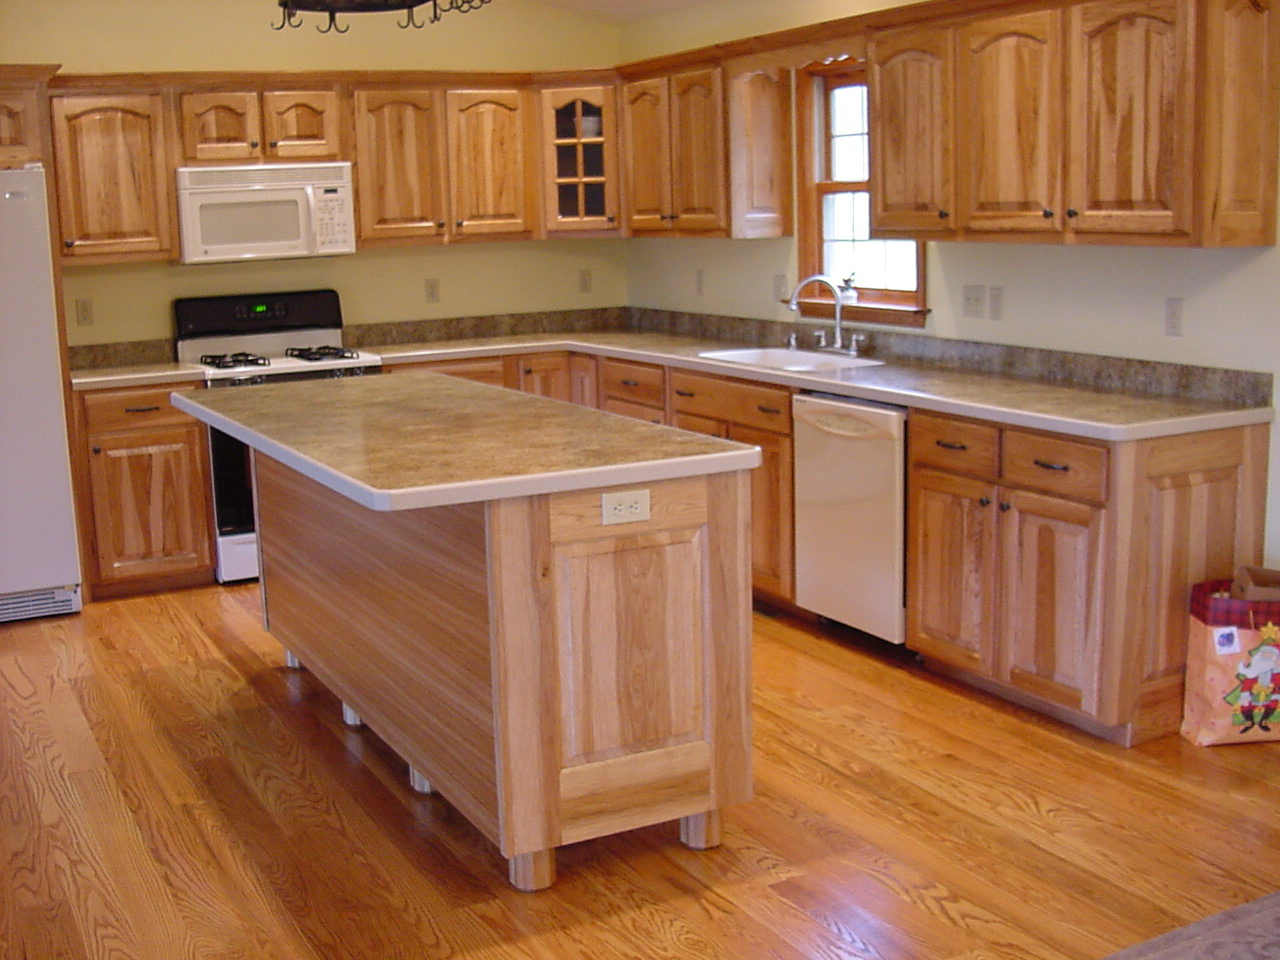 Countertop Kitchen : HOUSE CONSTRUCTION IN INDIA: KITCHENS COUNTERTOP MATERIALS